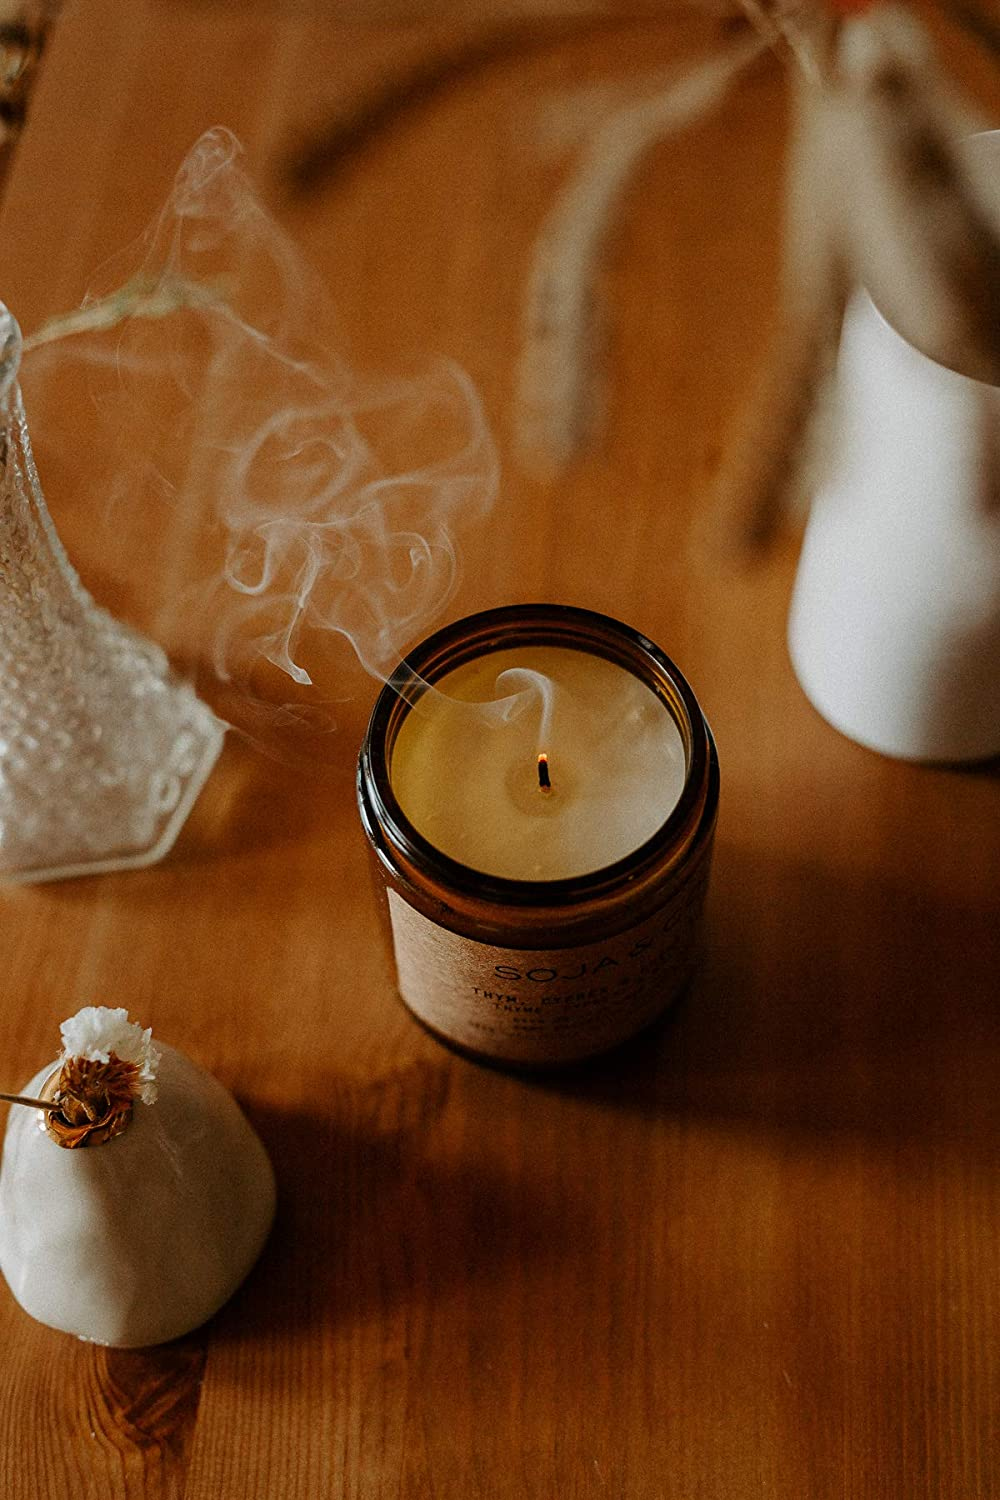 Bois de Santal /& Vanille//Lavender SOJA/&CO 8oz Lavande Scented Candles for Home Sandalwood /& Vanilla Aroma Aromatic Soy Wax Candle In Glass Jar Long Burning Glass Jar Soy Fragrance Candles Burns 50 Hours